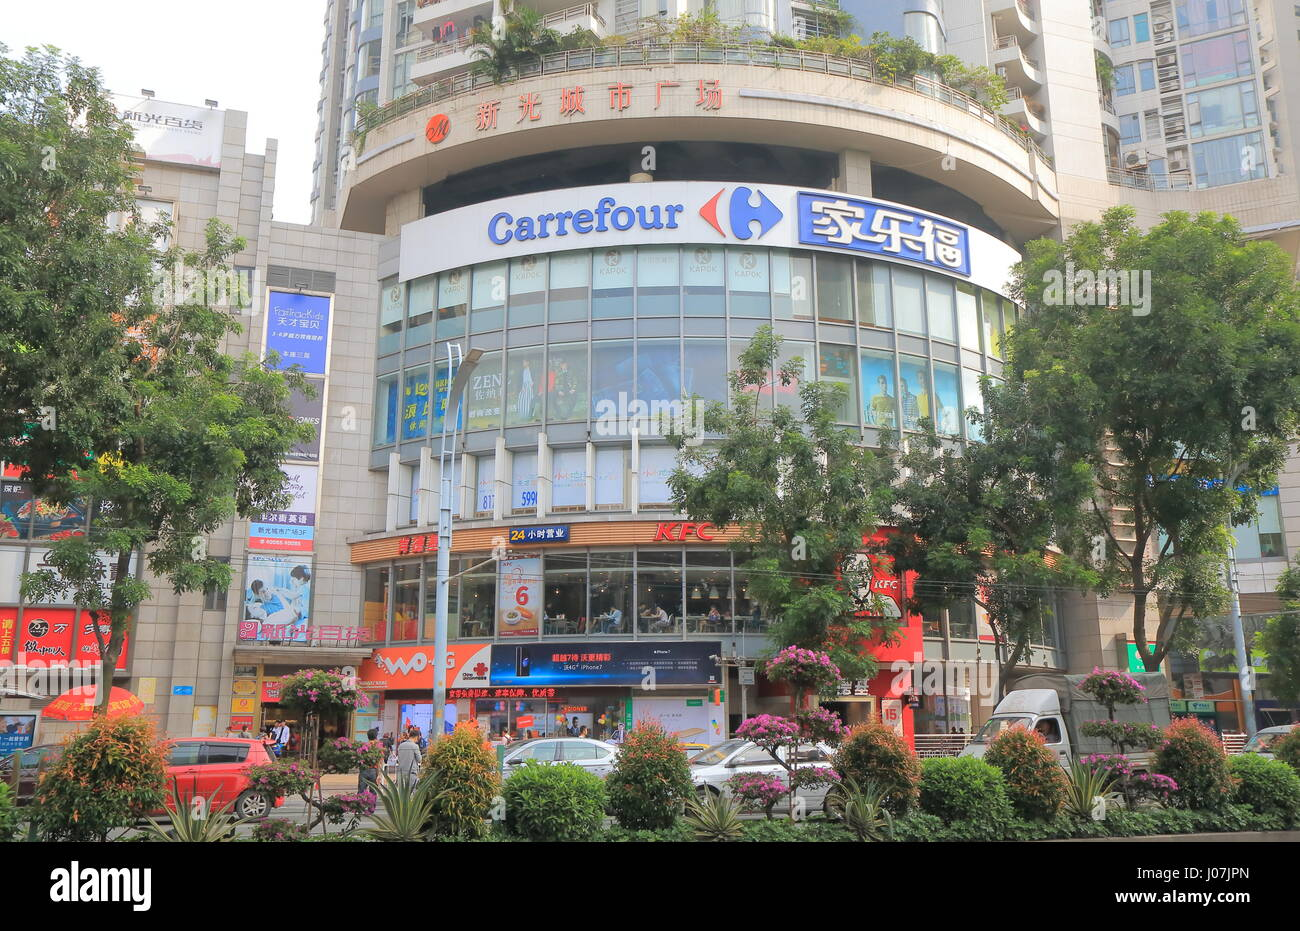 carrefour in china Infographic on carrefour china, building a greener store a case study from harvard business school.